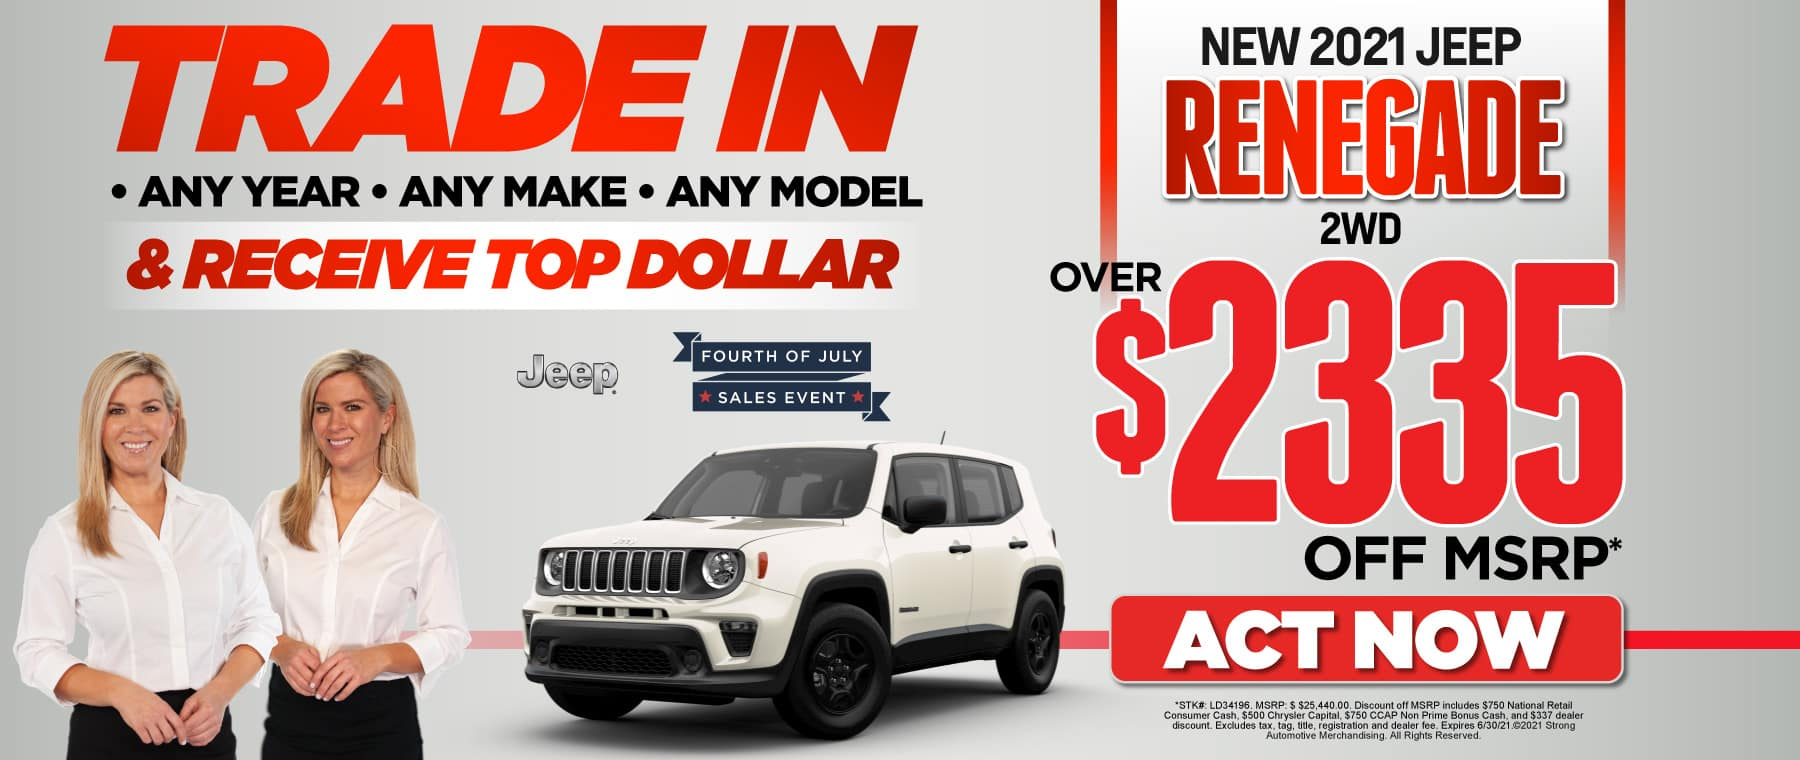 2021 Jeep Renegade: over $2335 off msrp — ACT NOW